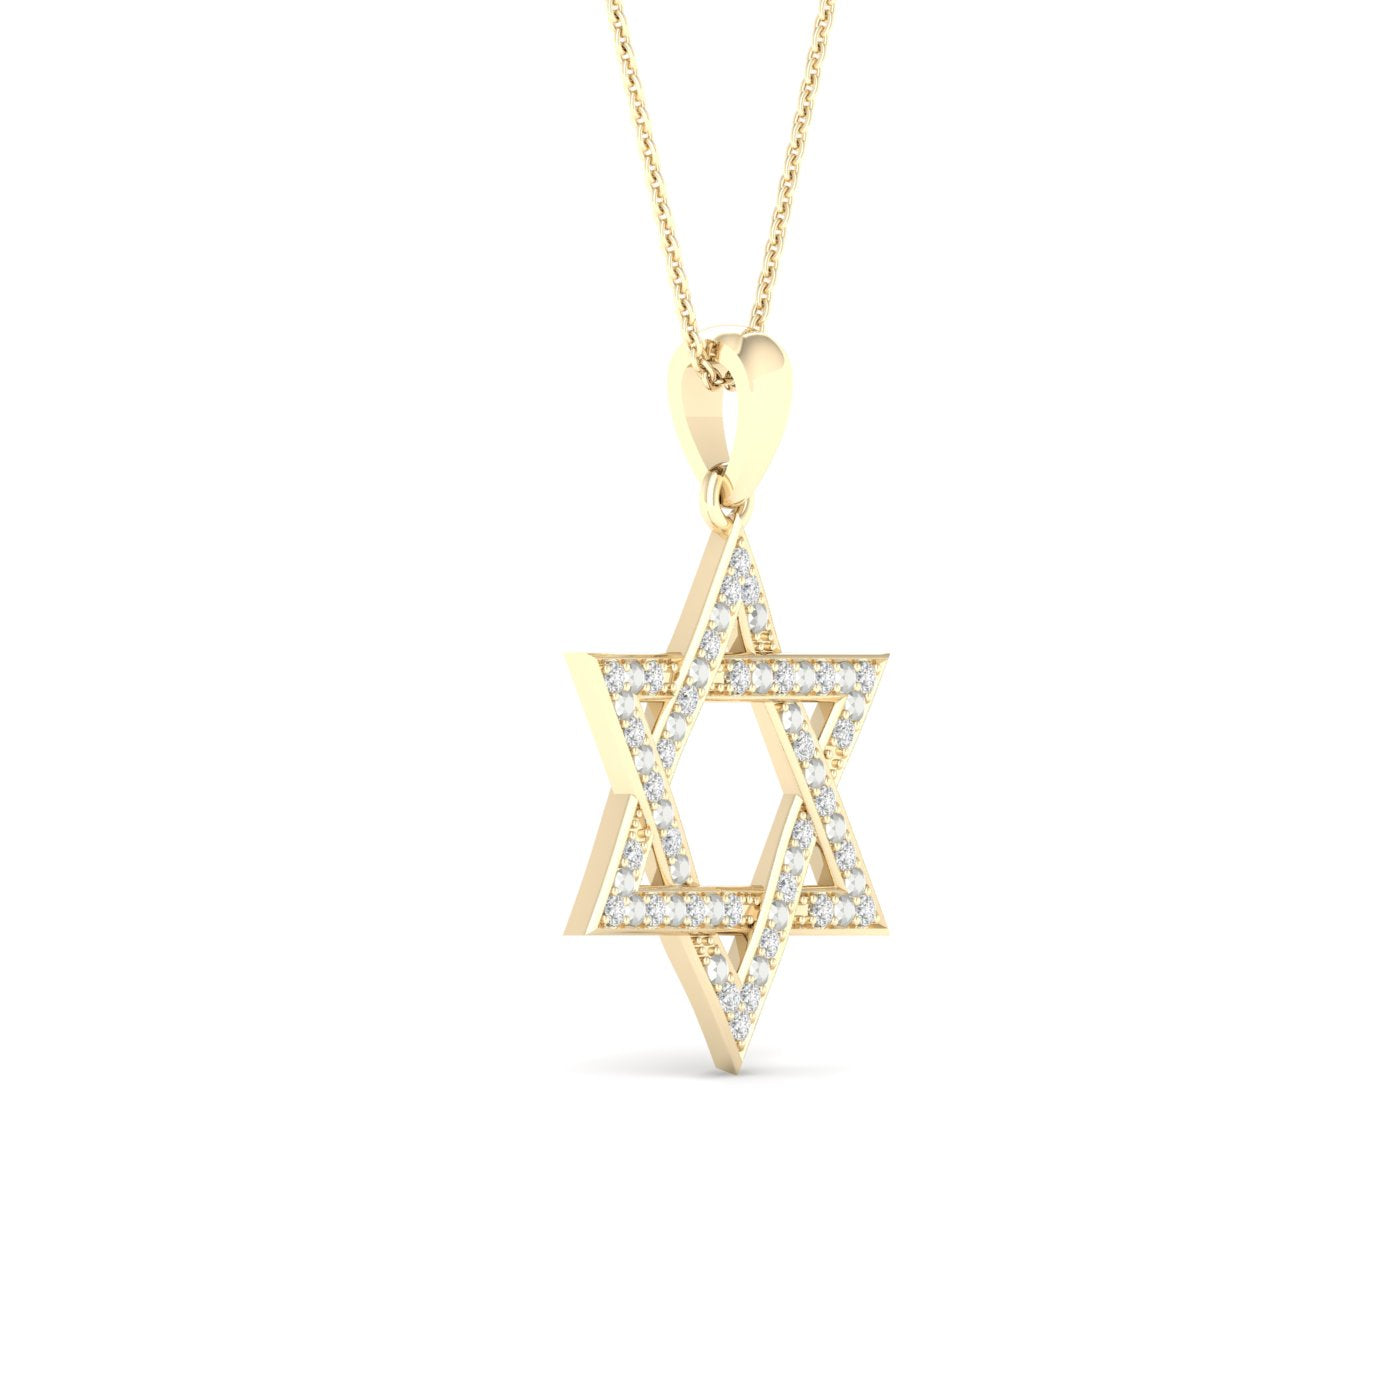 Diamond Star of David Pendant Round Cut 0.10 Carats 10KT Yellow Gold with Chain